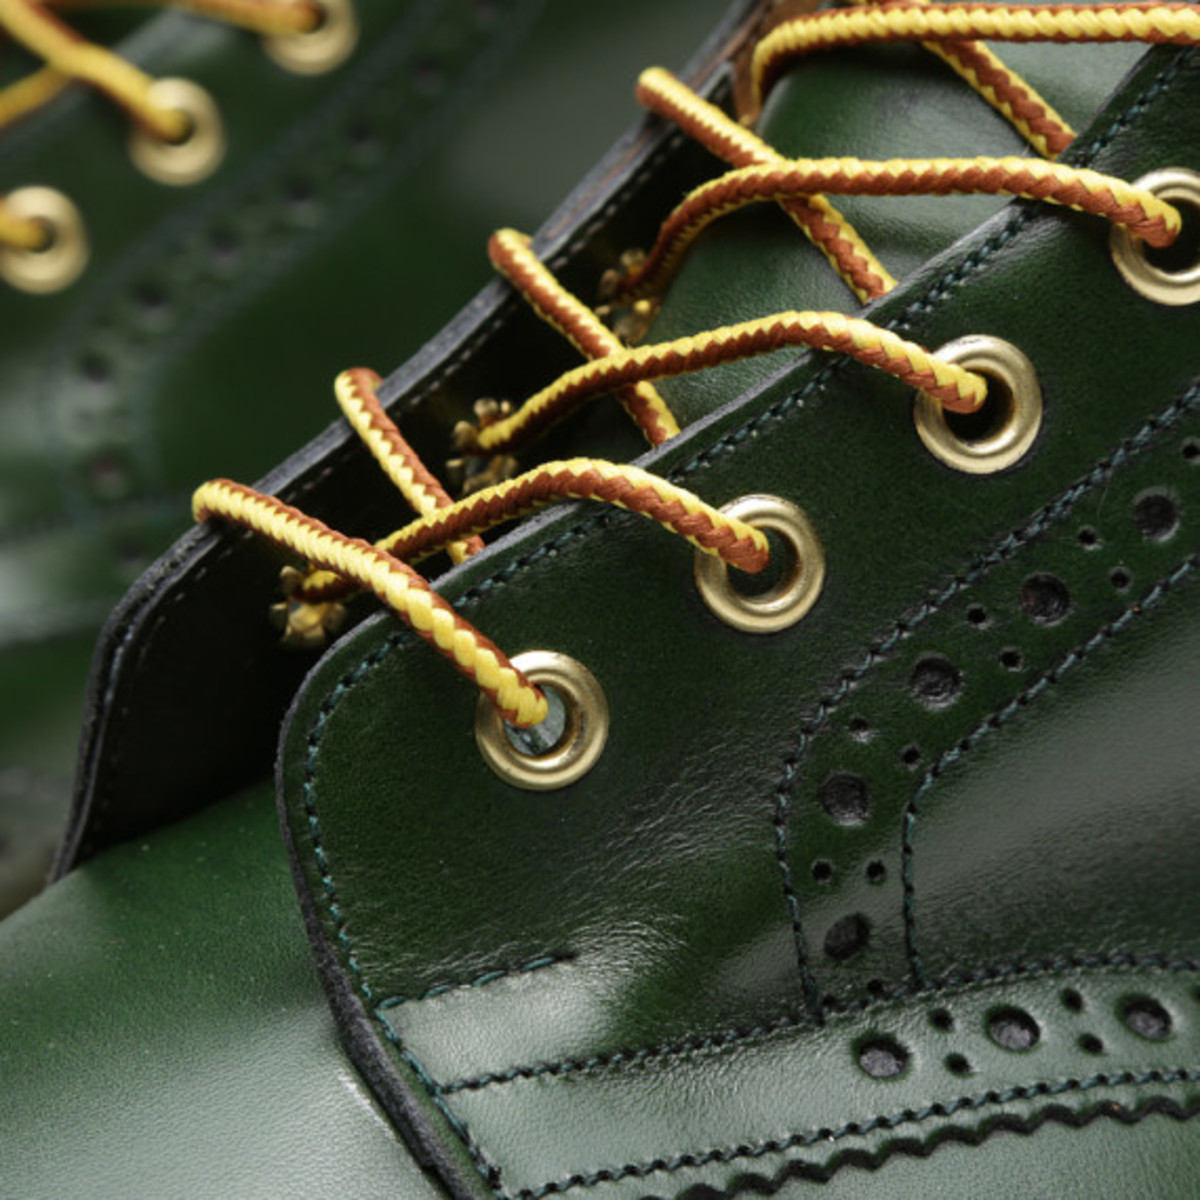 end-trickers-vibram-sole-stow-boot-09